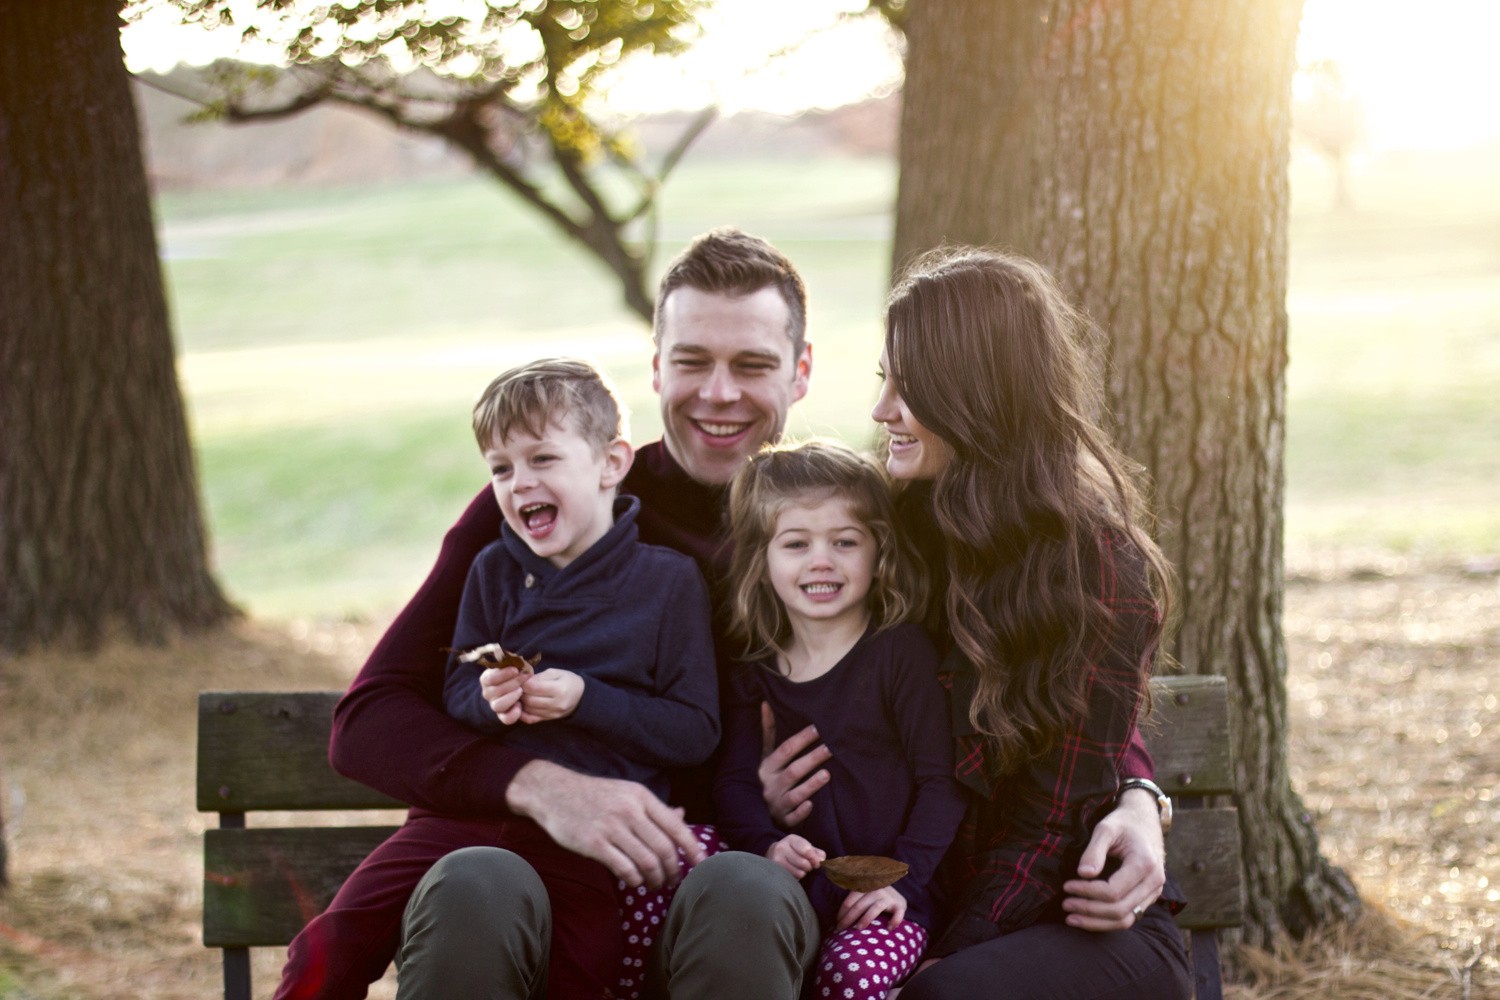 Cromwell bridge park family session 1 by Joshua Anderson